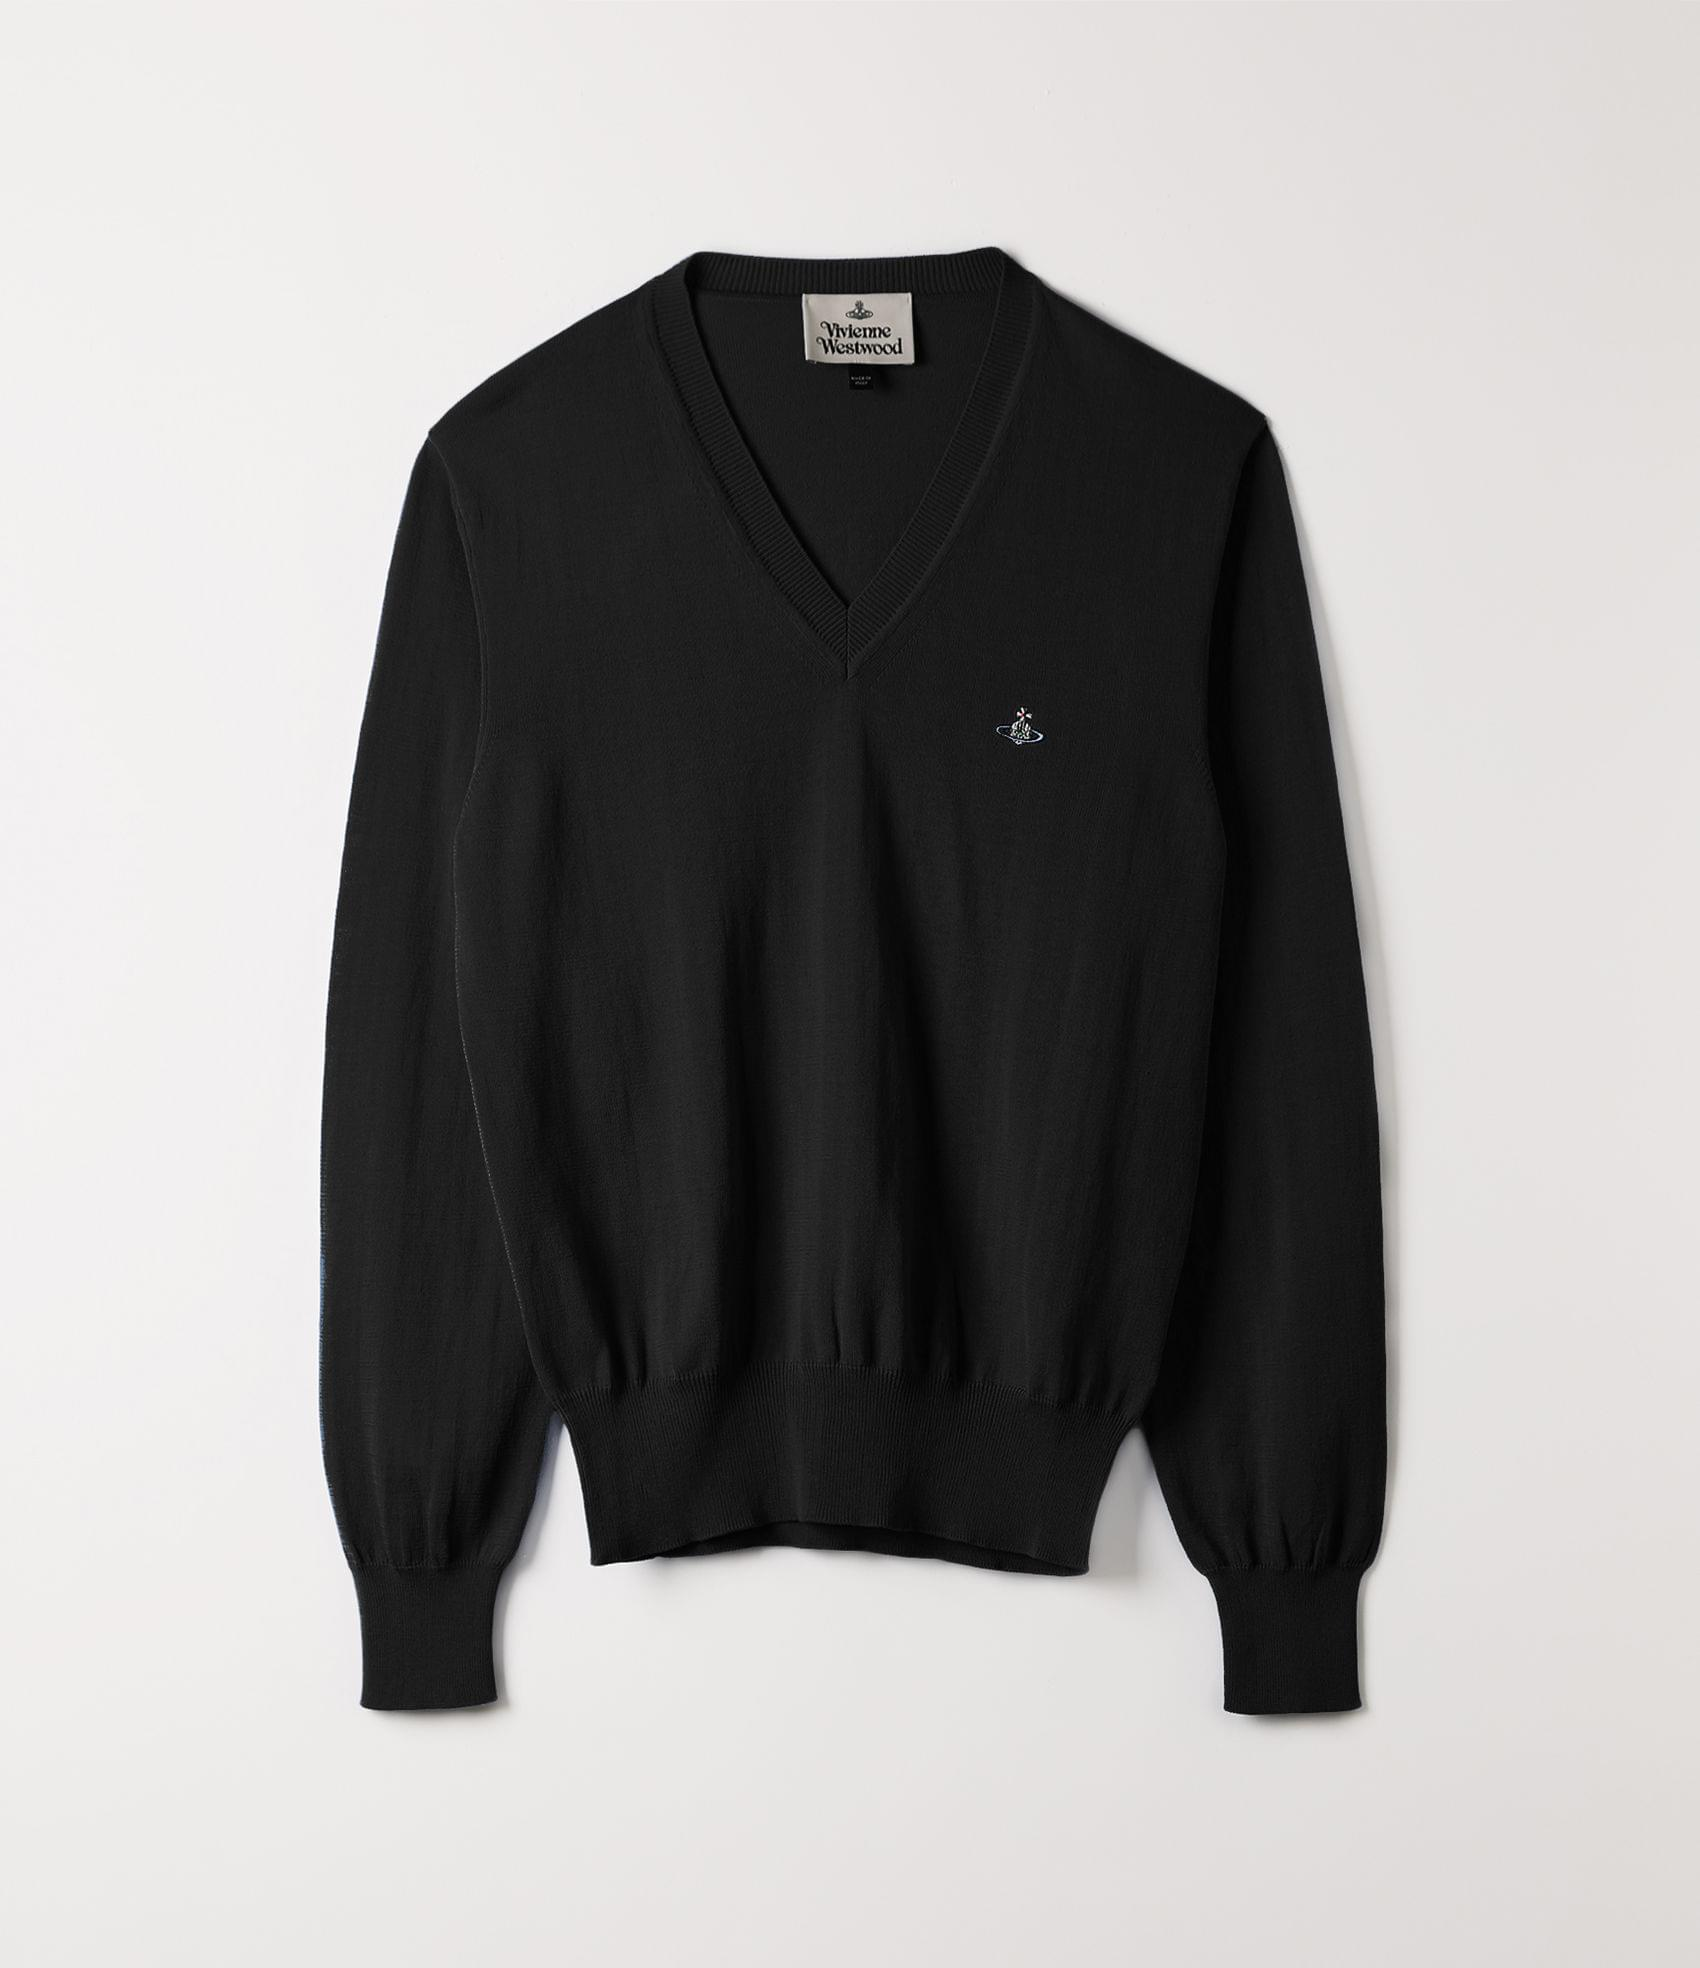 Vivienne Westwood V-NECK KNIT BLACK